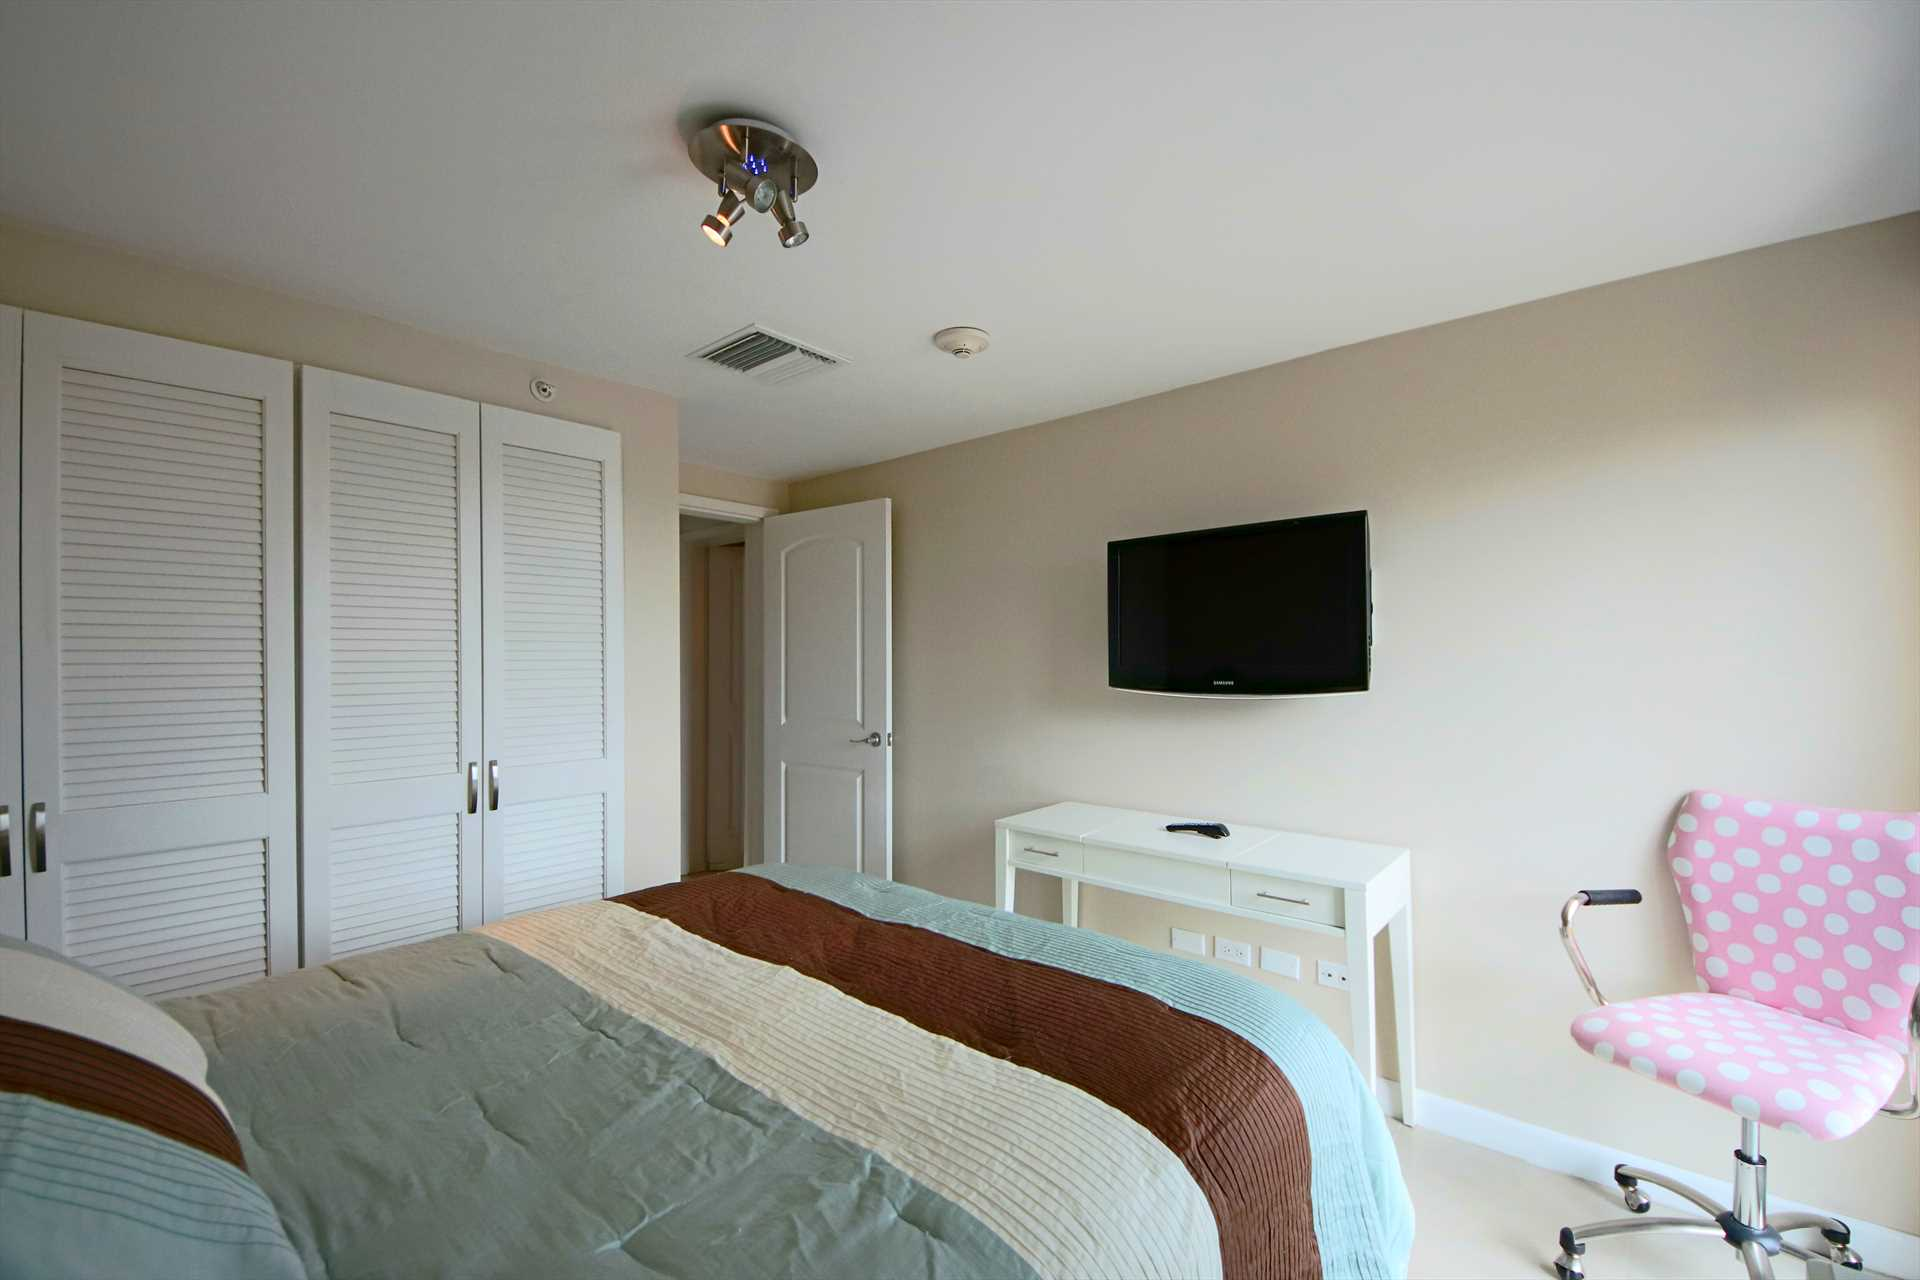 Third bedroom with TV